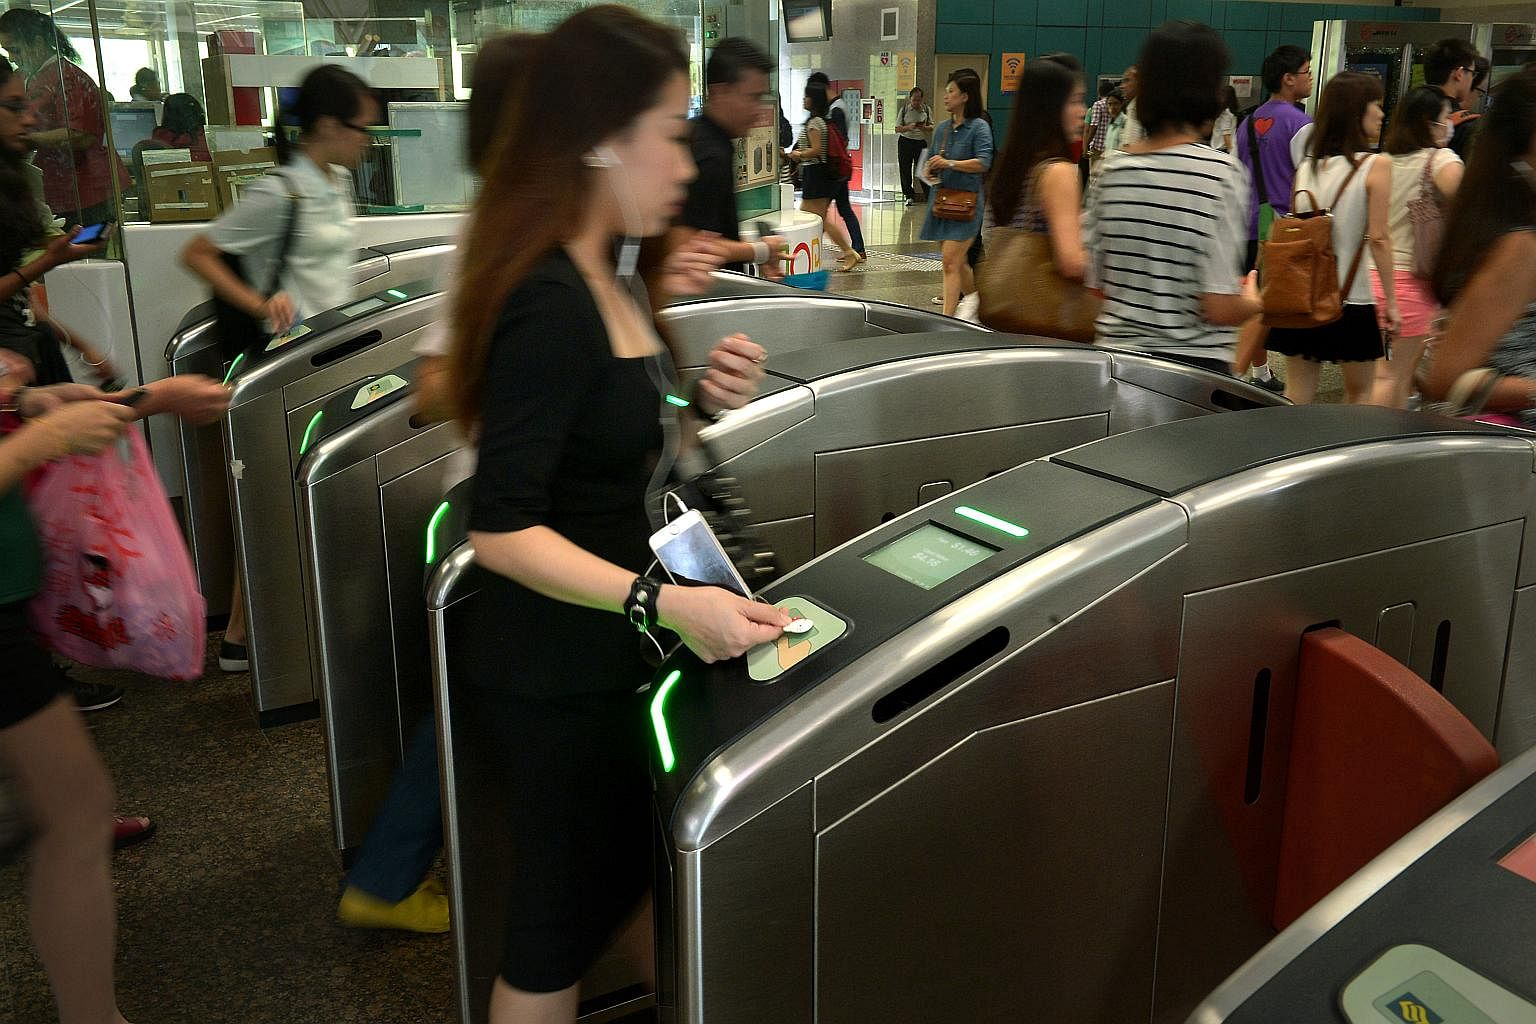 Commuters can use compatible NFC phones to pay bus and train fares